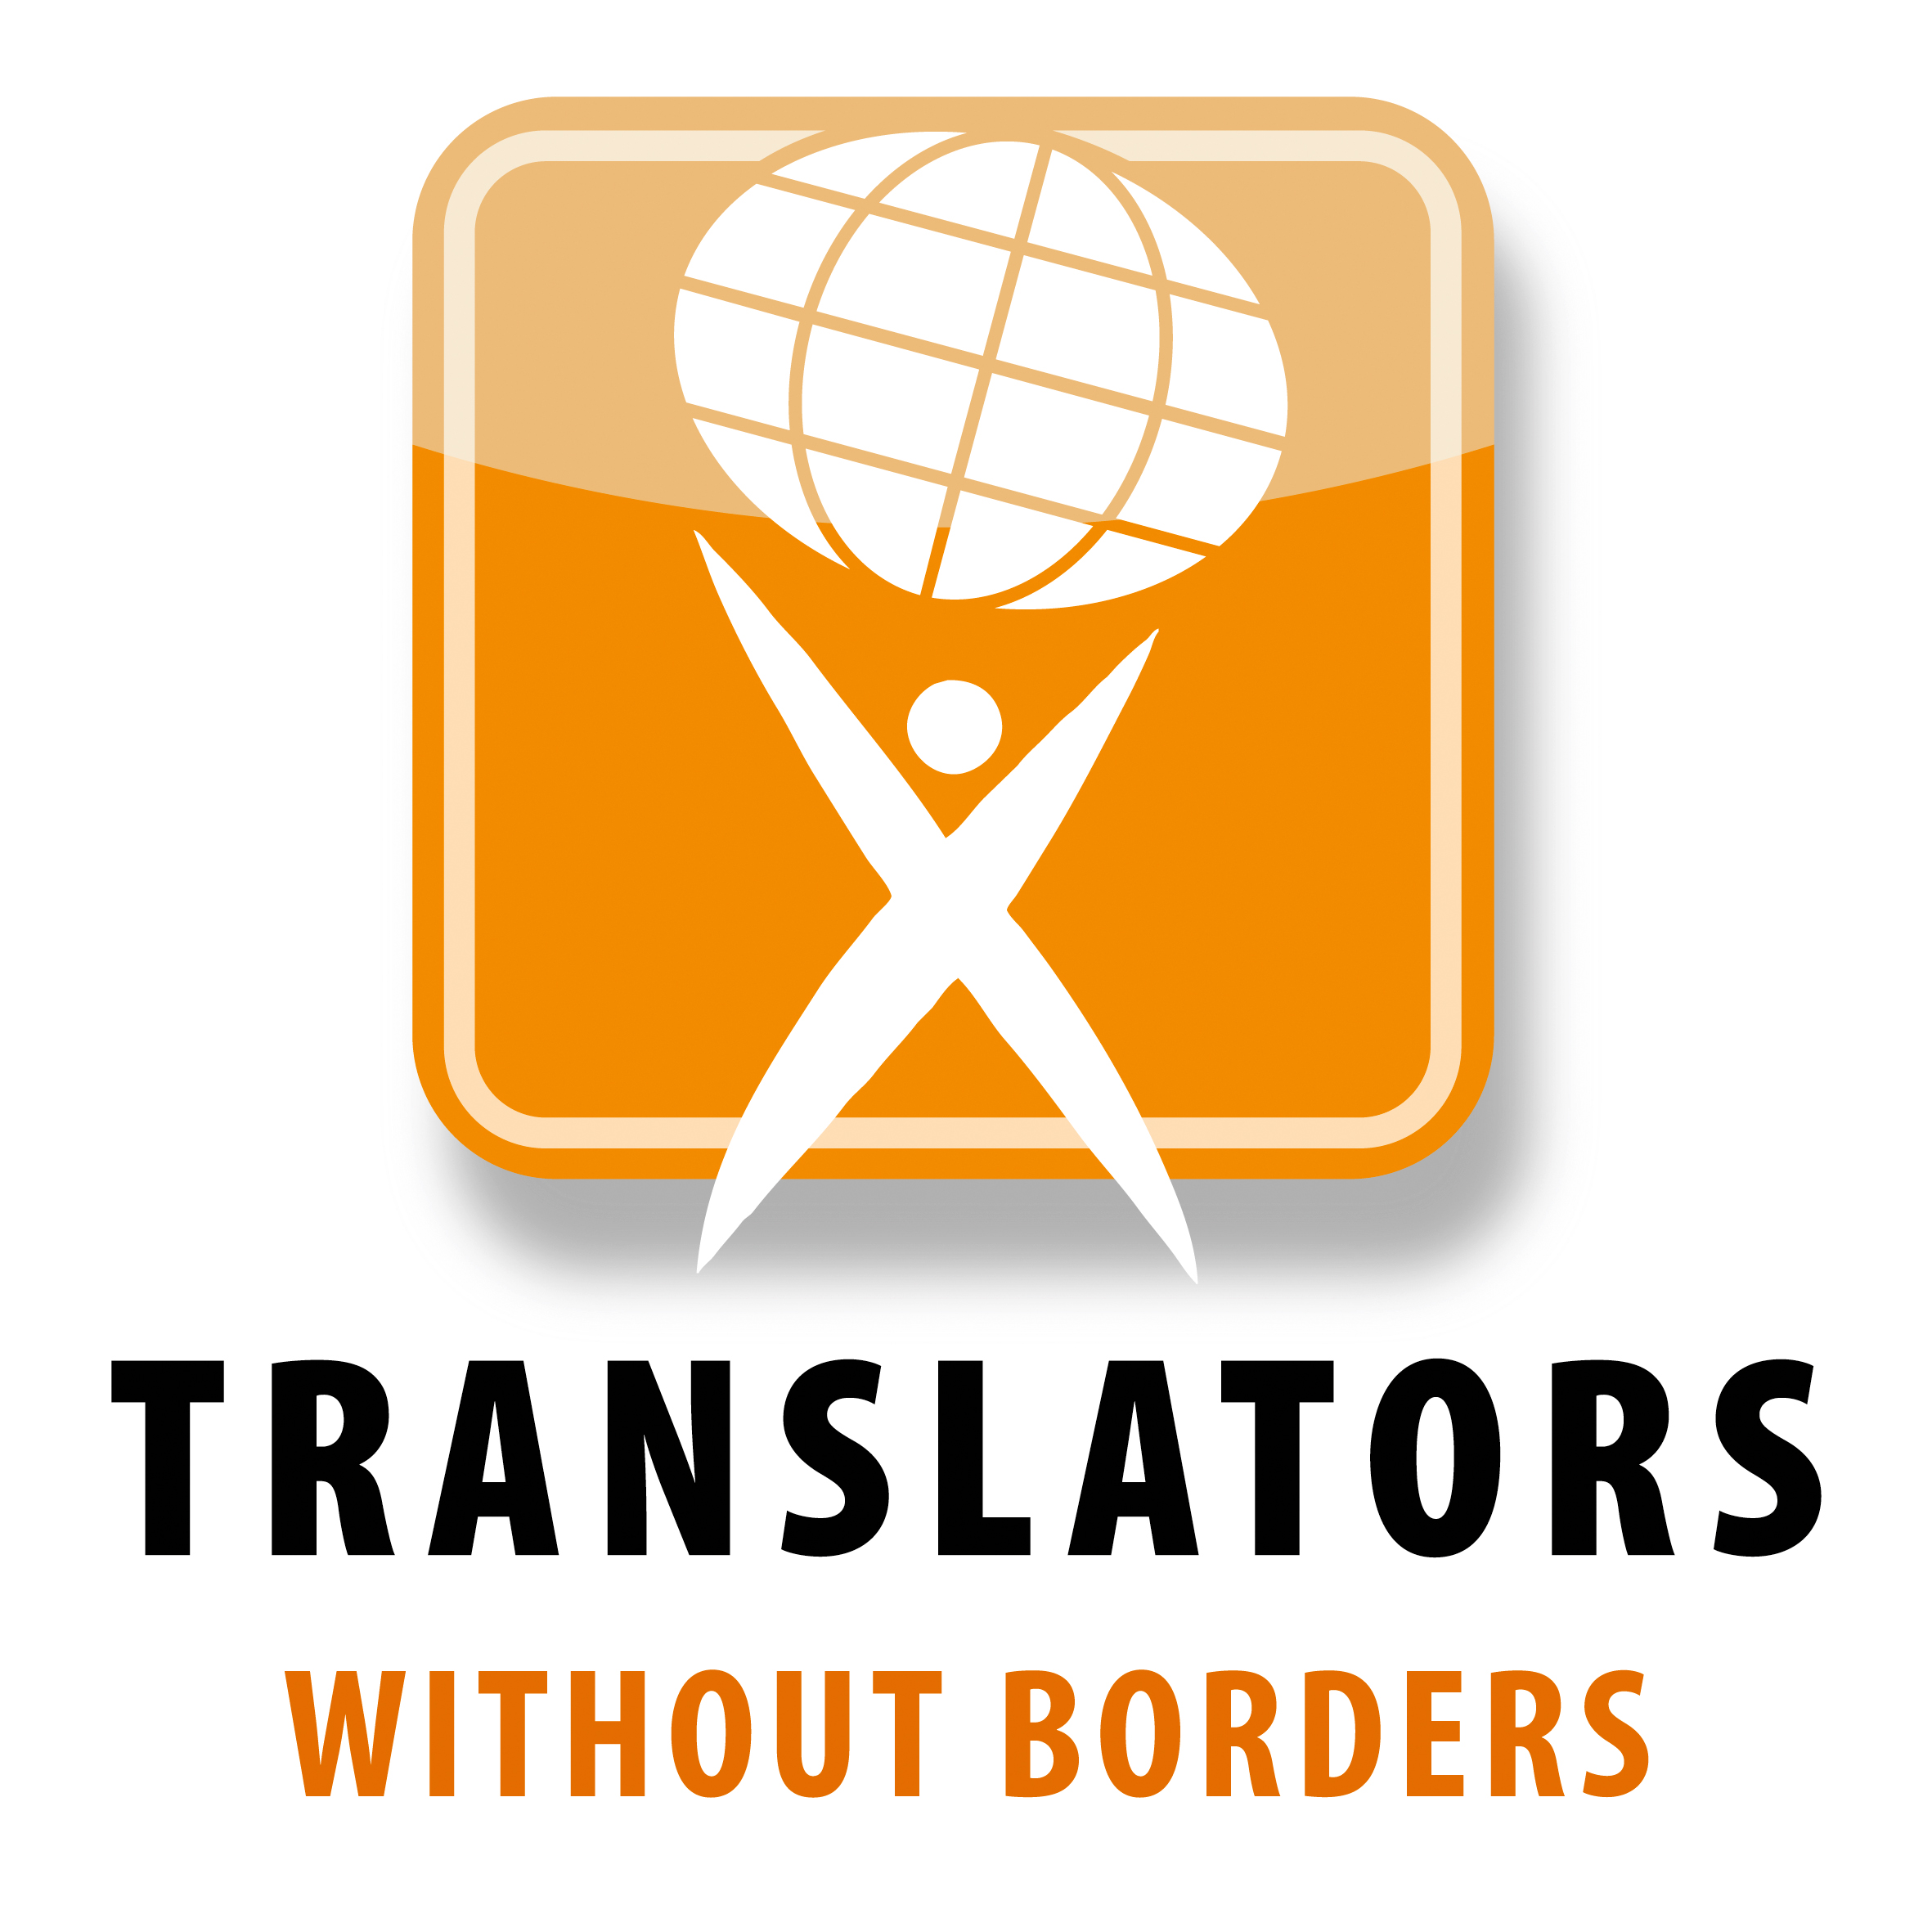 Multi-Languages charitable organizations - Translators Without Borders